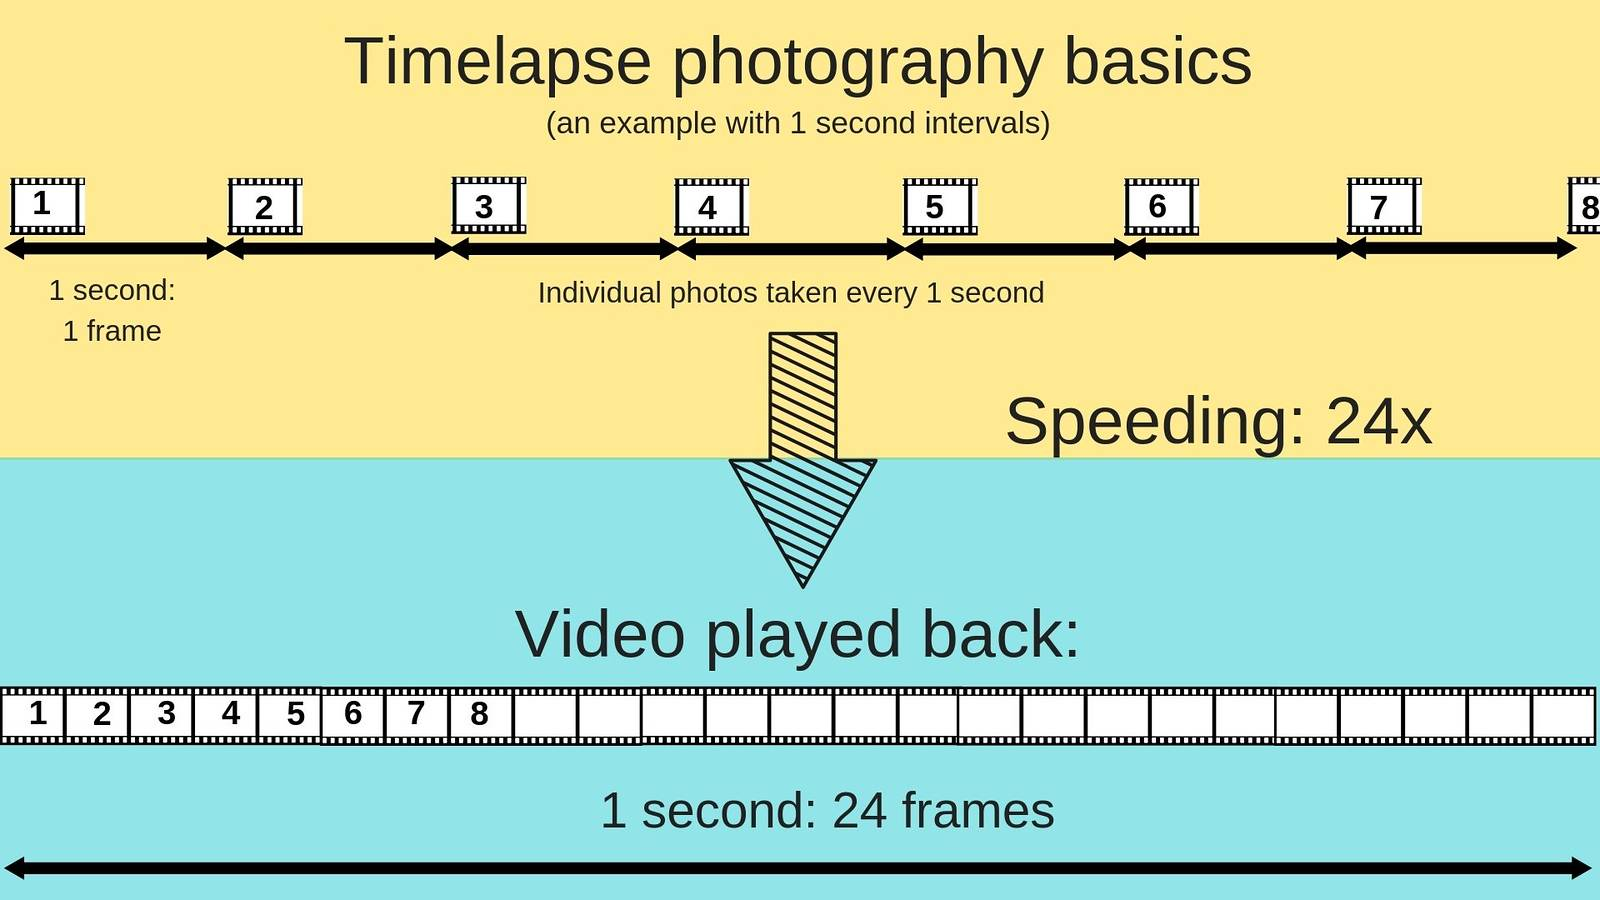 timelapse photography basics frame rate interval